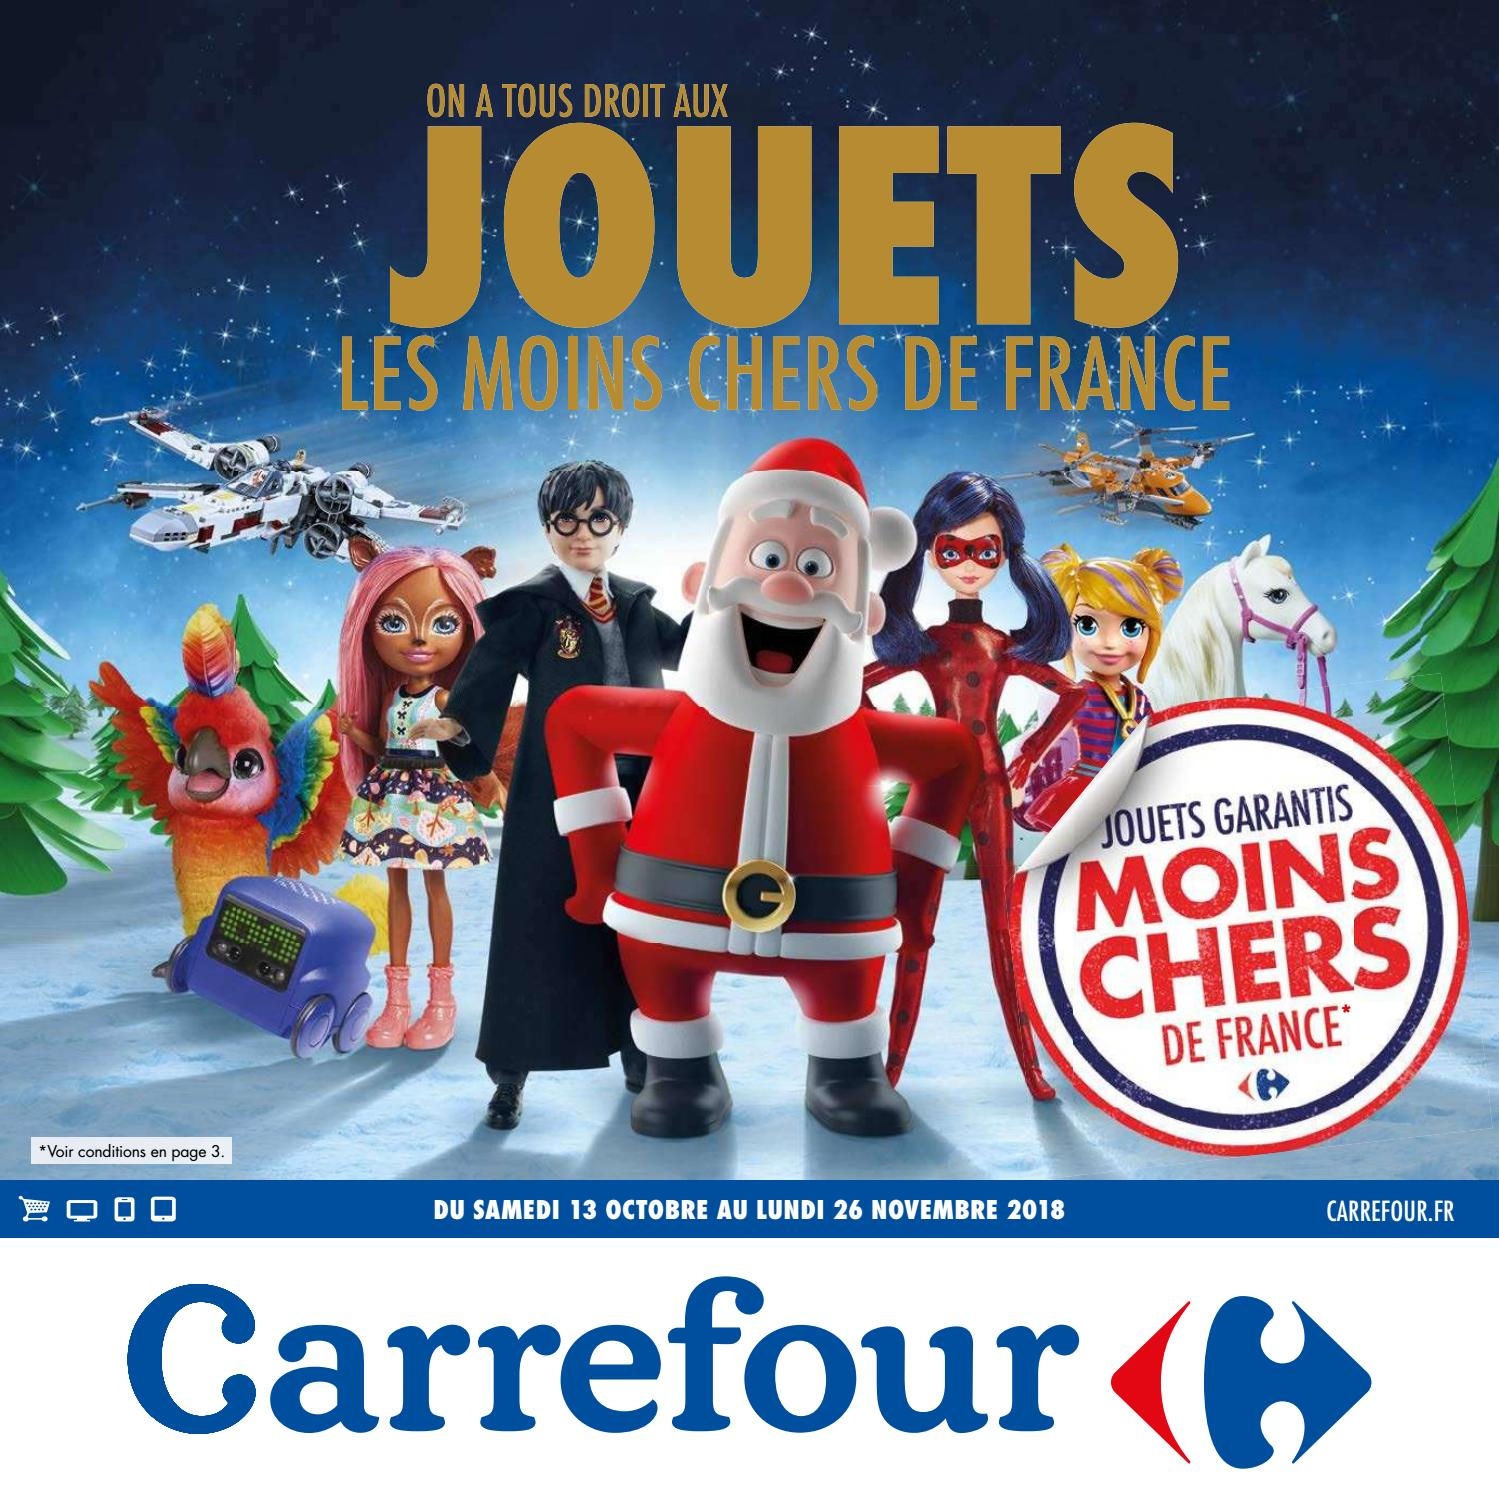 Catalogue Jouets Noel 2018 Carrefour By Yvernault Issuu